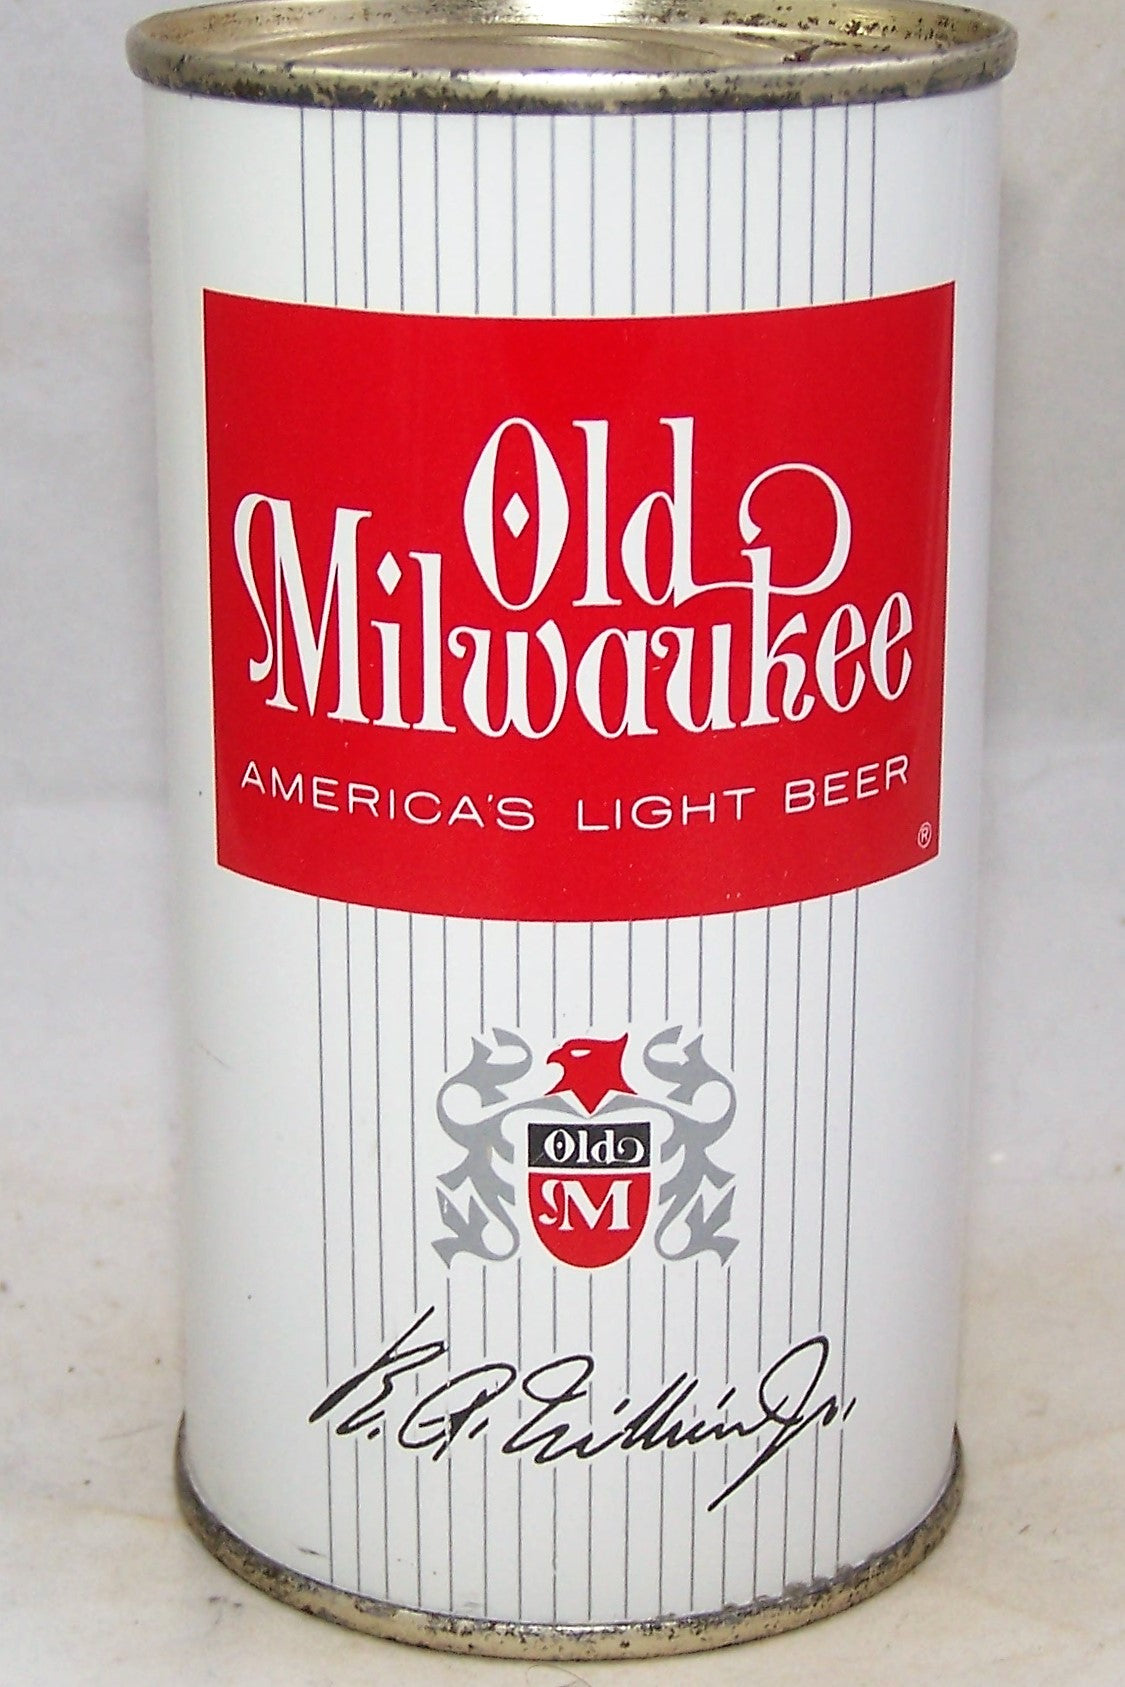 Old Milwaukee Americas Light Beer, USBC 107-30, Grade A1+